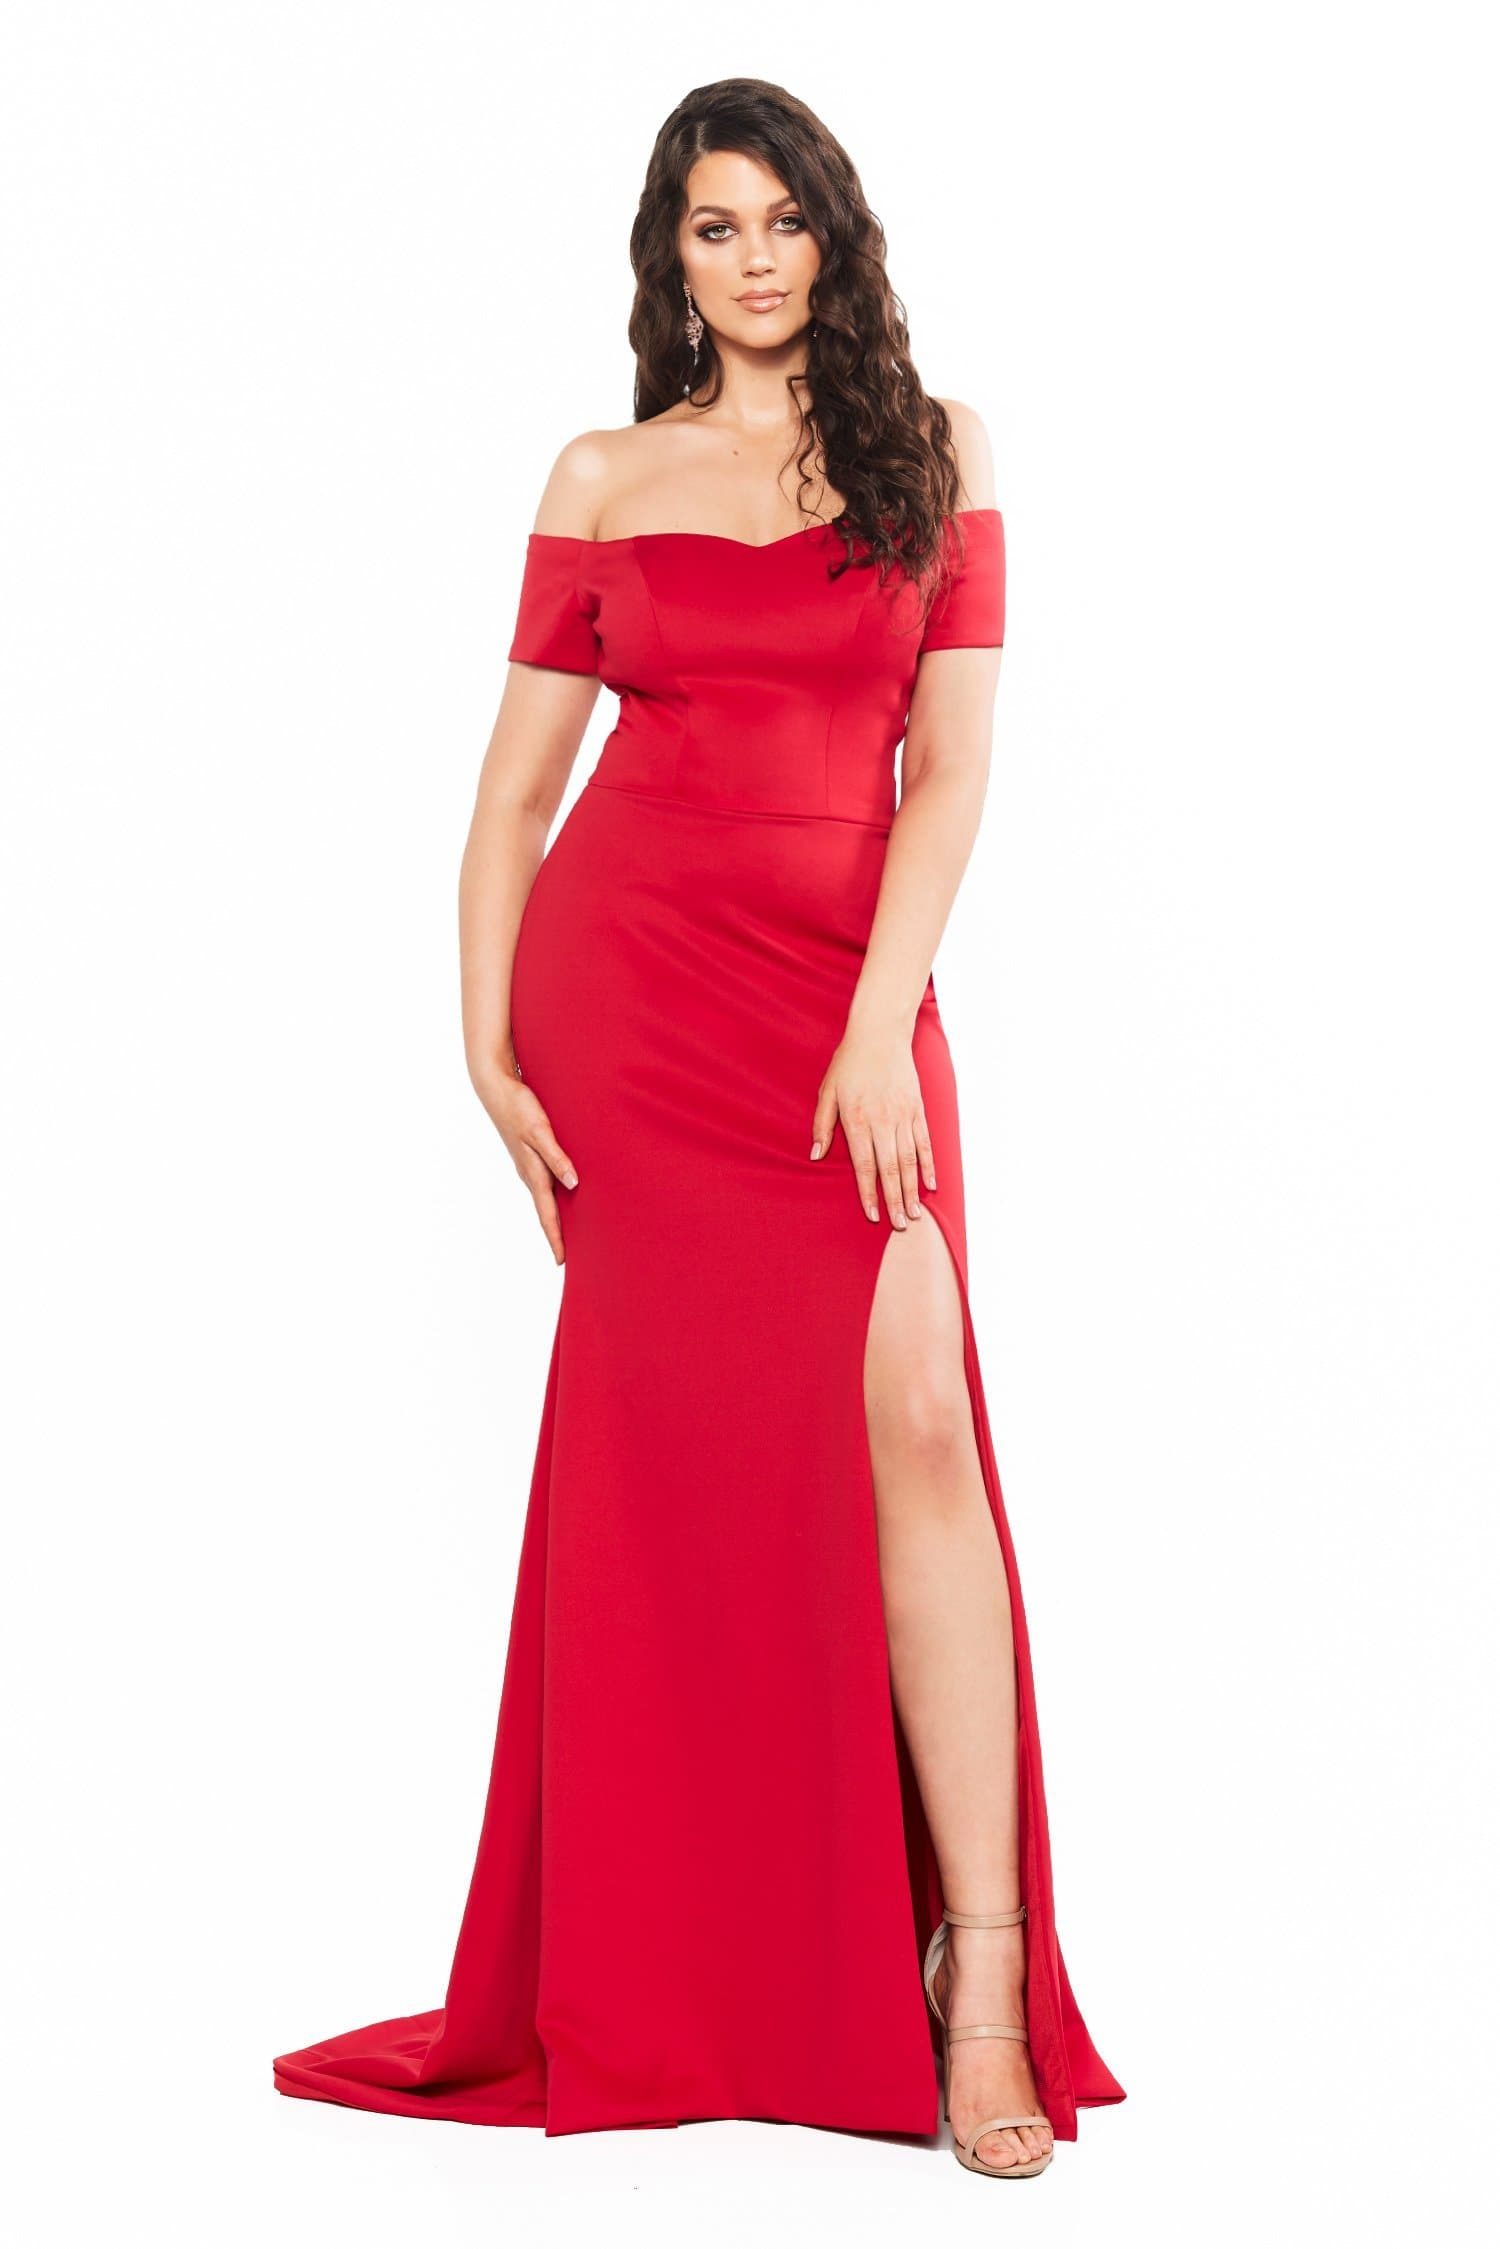 A&N Curve Belle Ponti Off-Shoulder Gown with Slit - Red